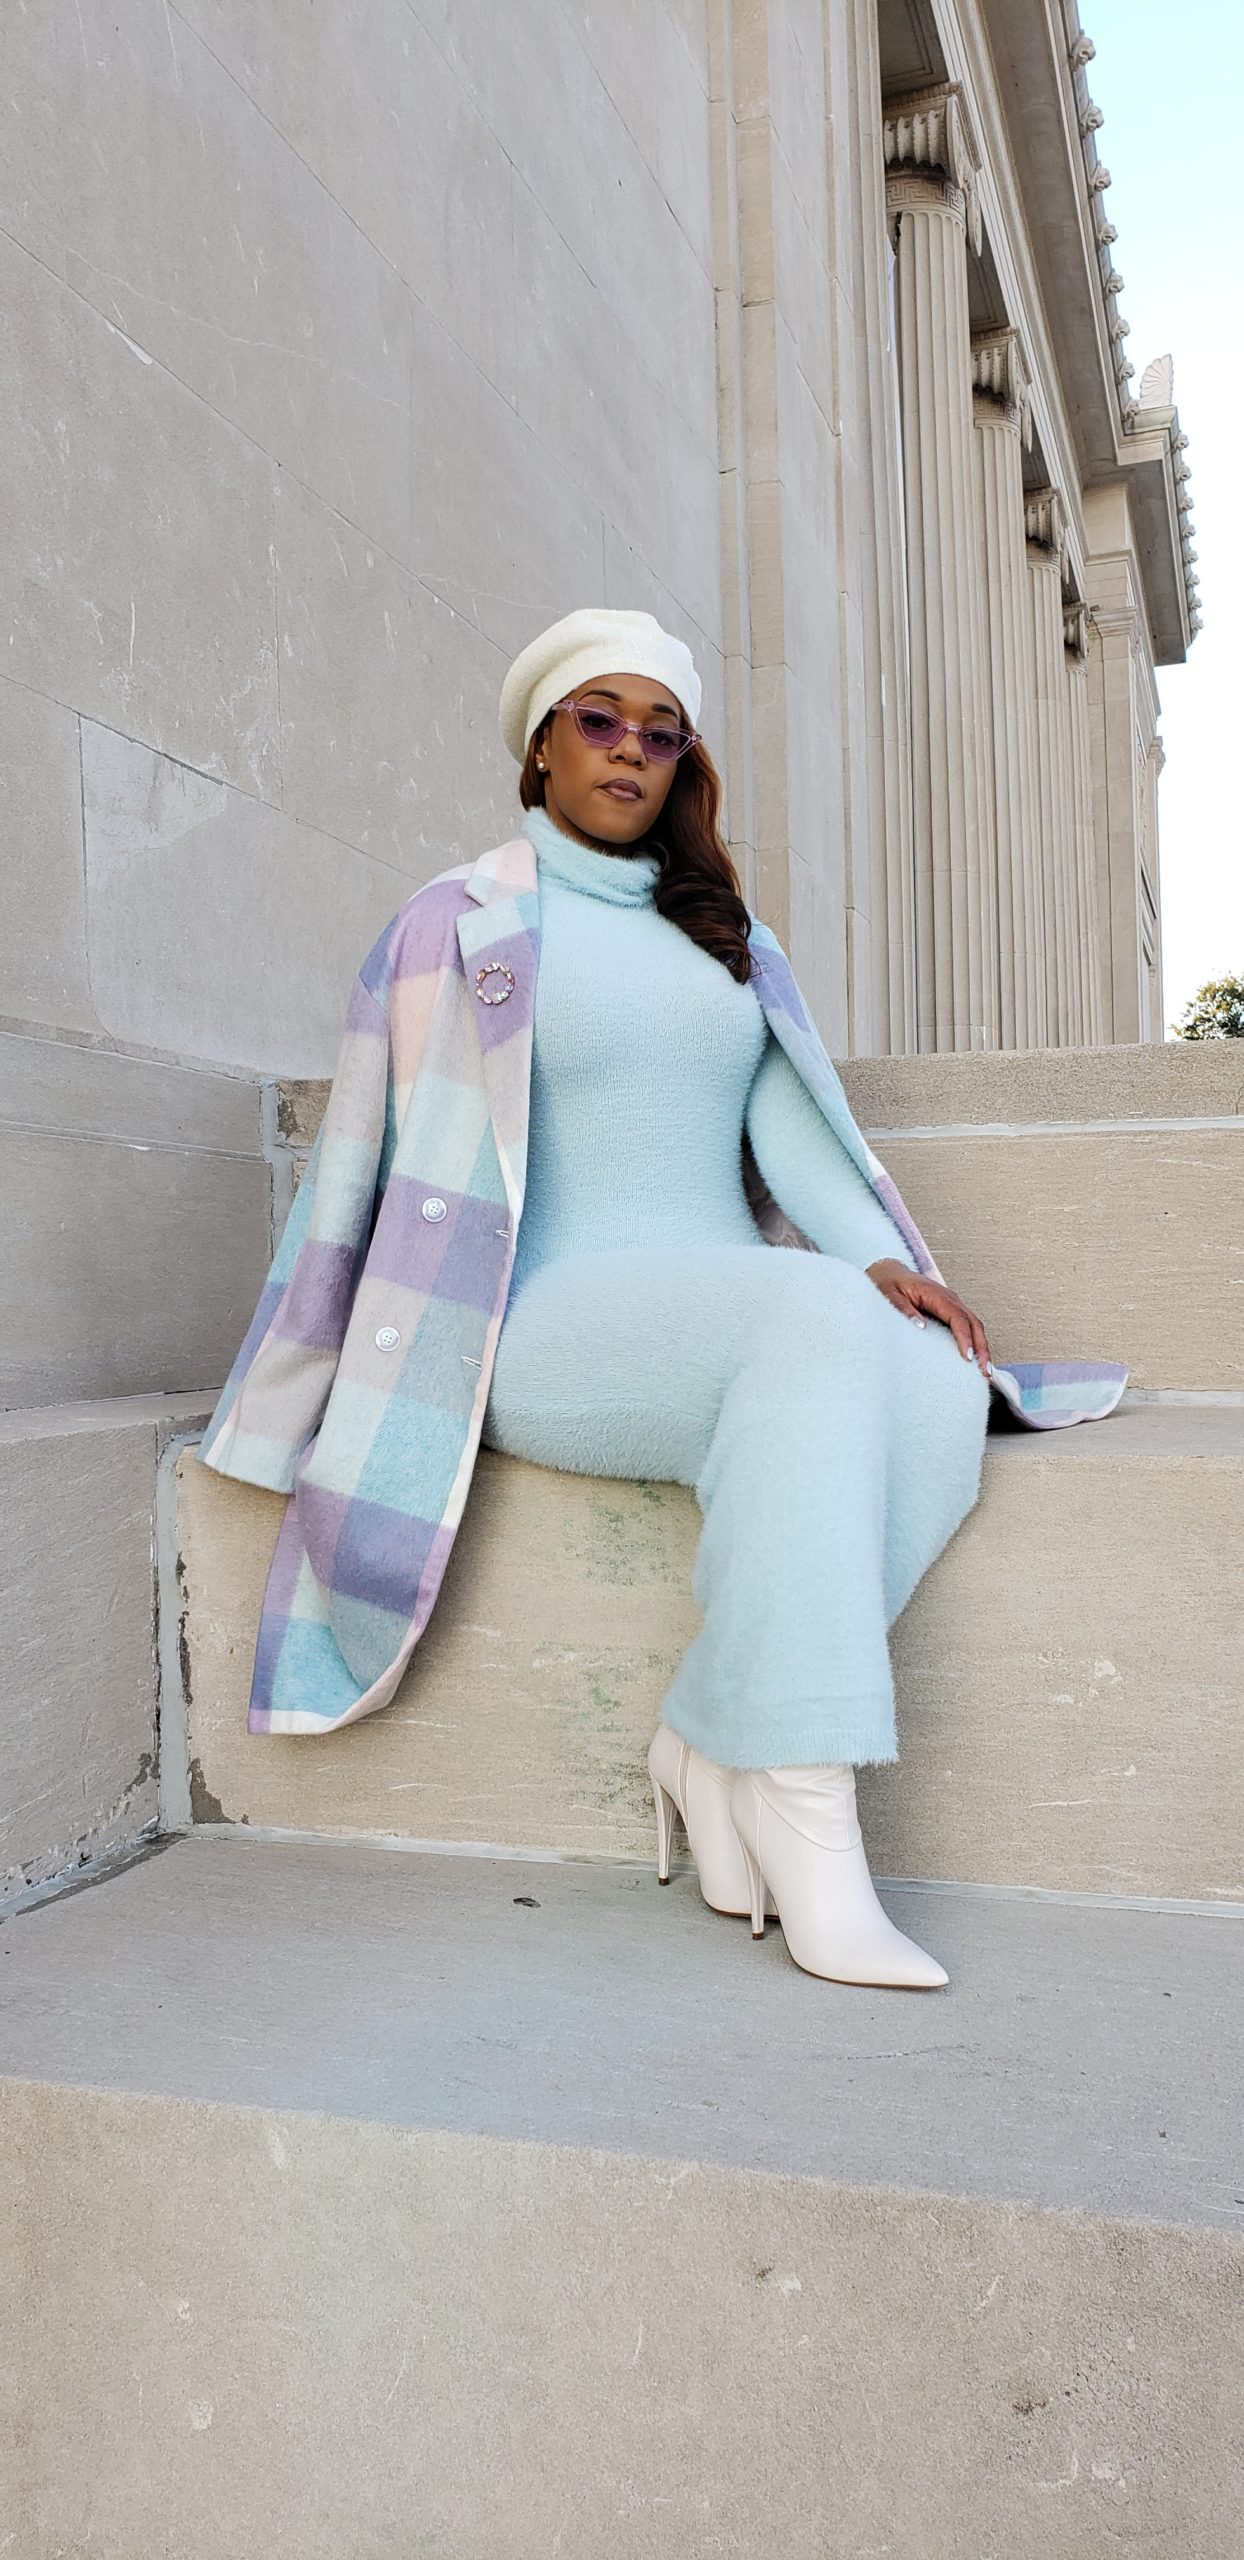 Fashion Bombshell of the Day: Saidah from Louisiana